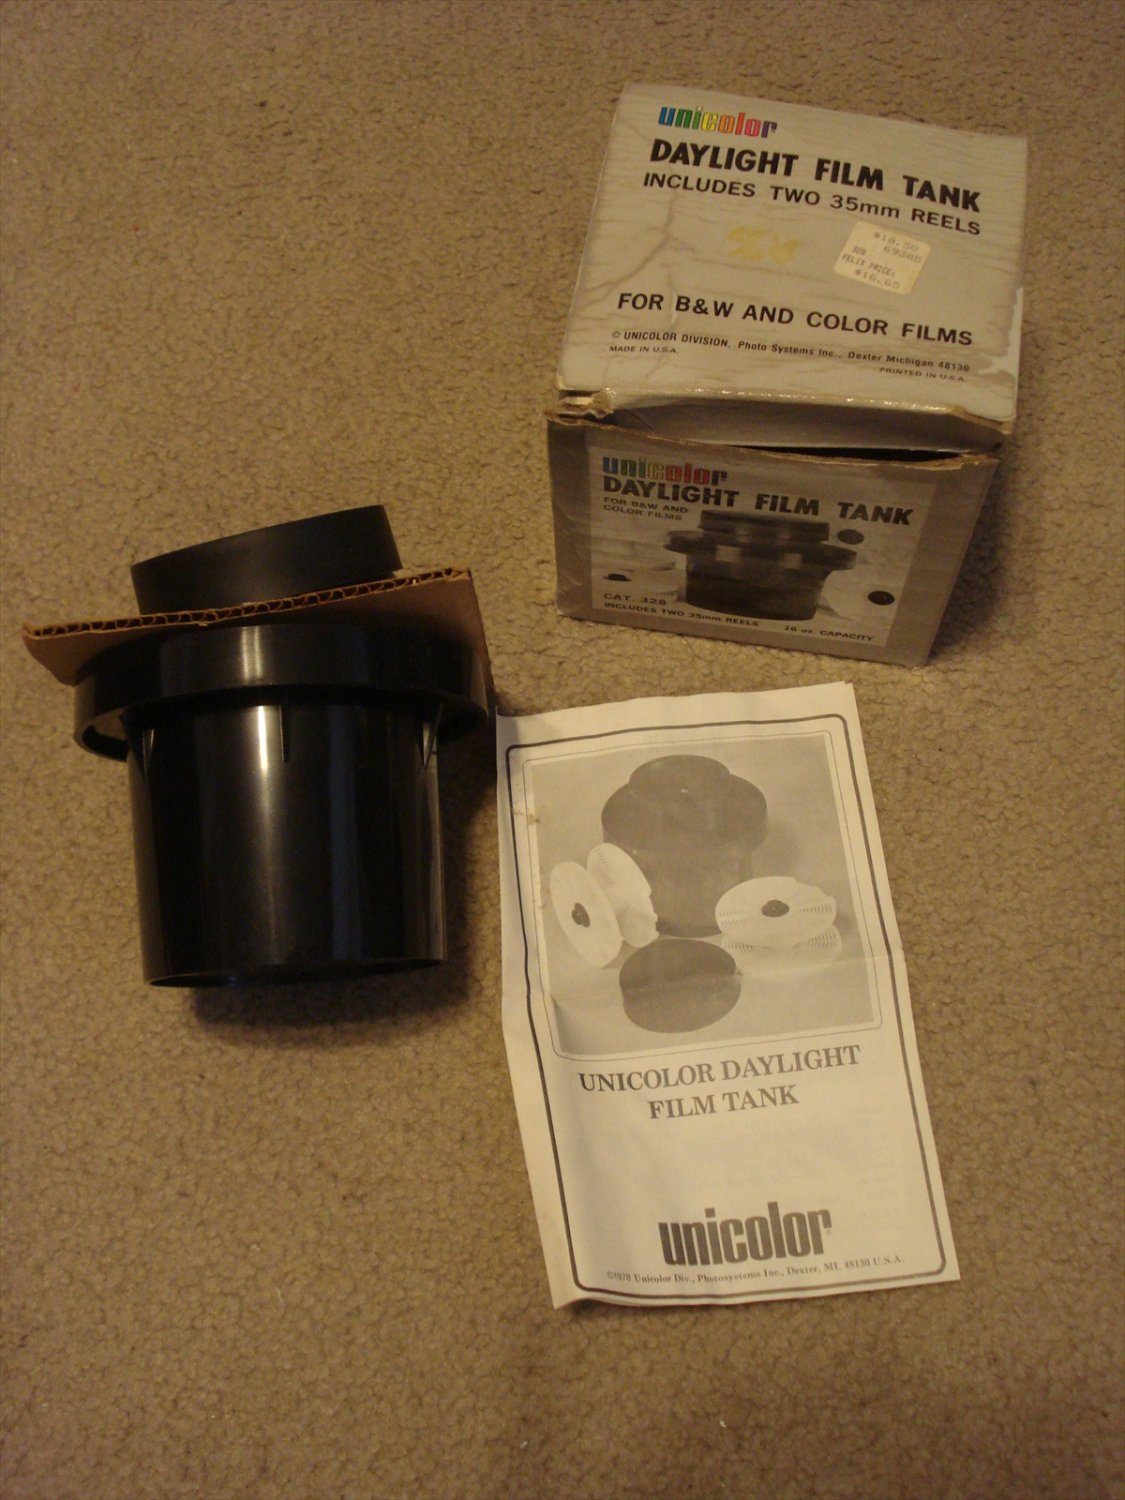 Unicolor Daylight Film Tank for B&W and Color Films, with two 35mm Reels